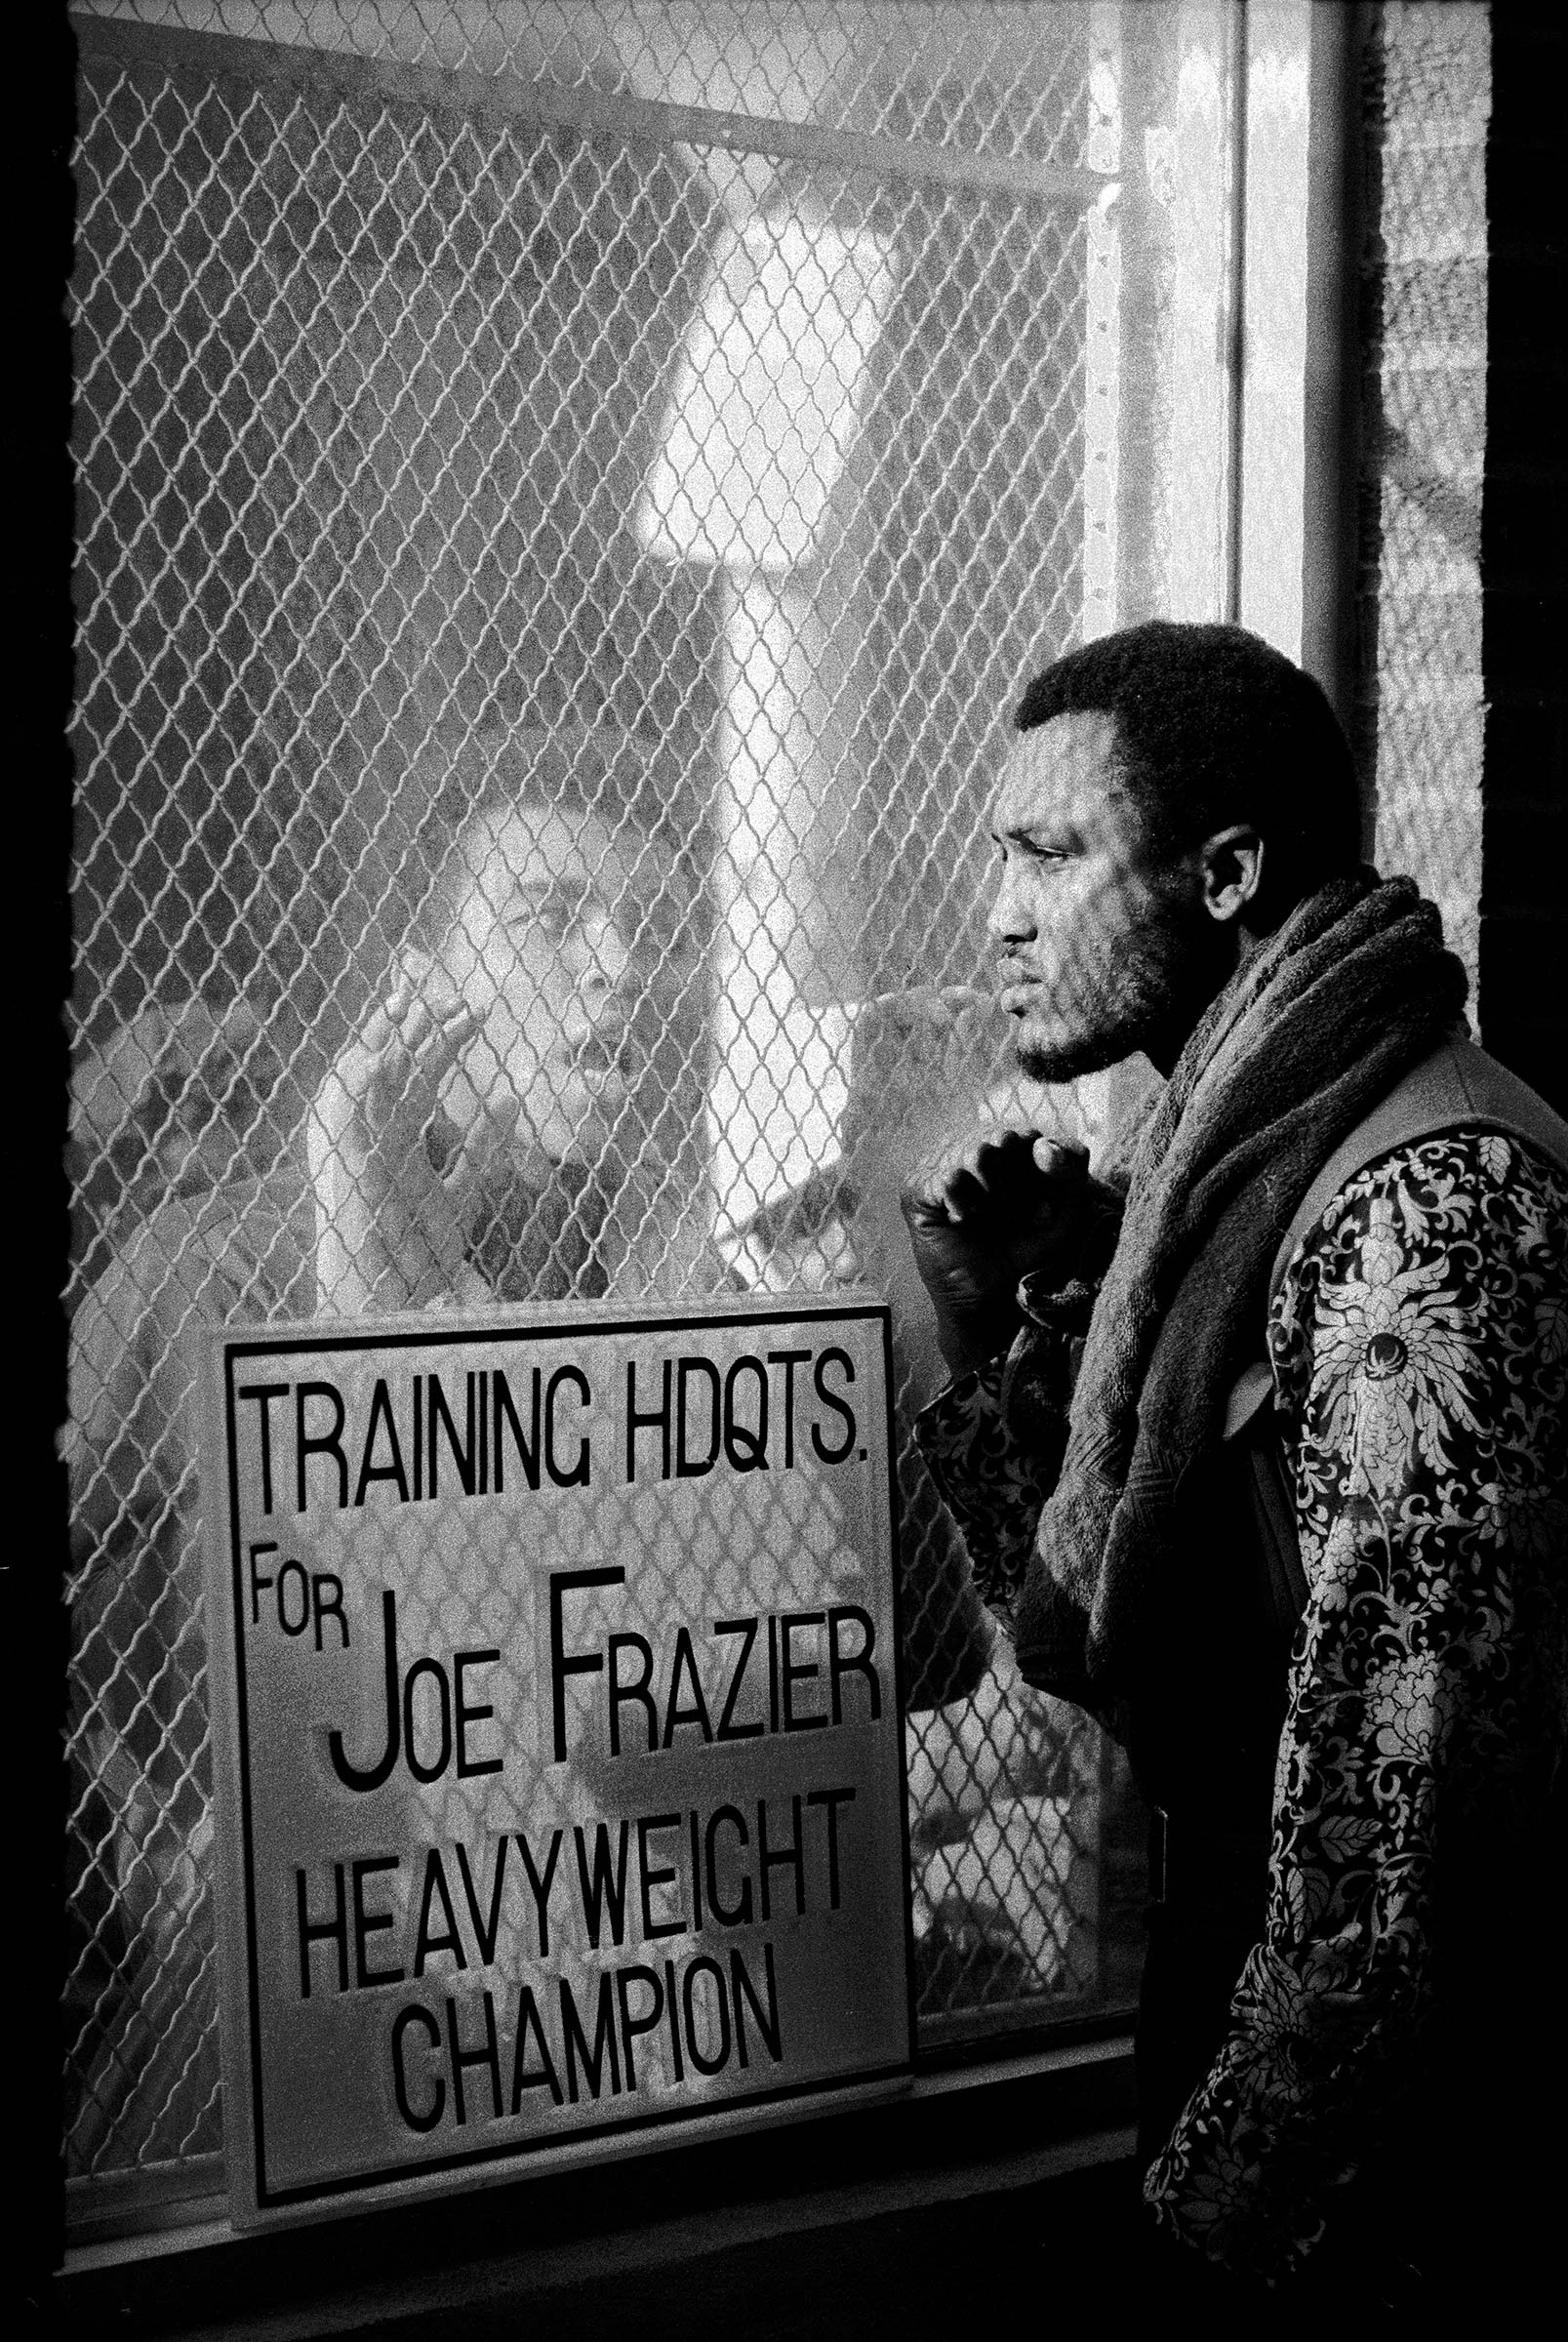 American boxer Muhammad Ali taunts rival boxer Joe Frazier at Frazier's training headquarters in Philadelphia, early 1971. The two men fought for the World Heavyweight Title on March 8—Frazier won.